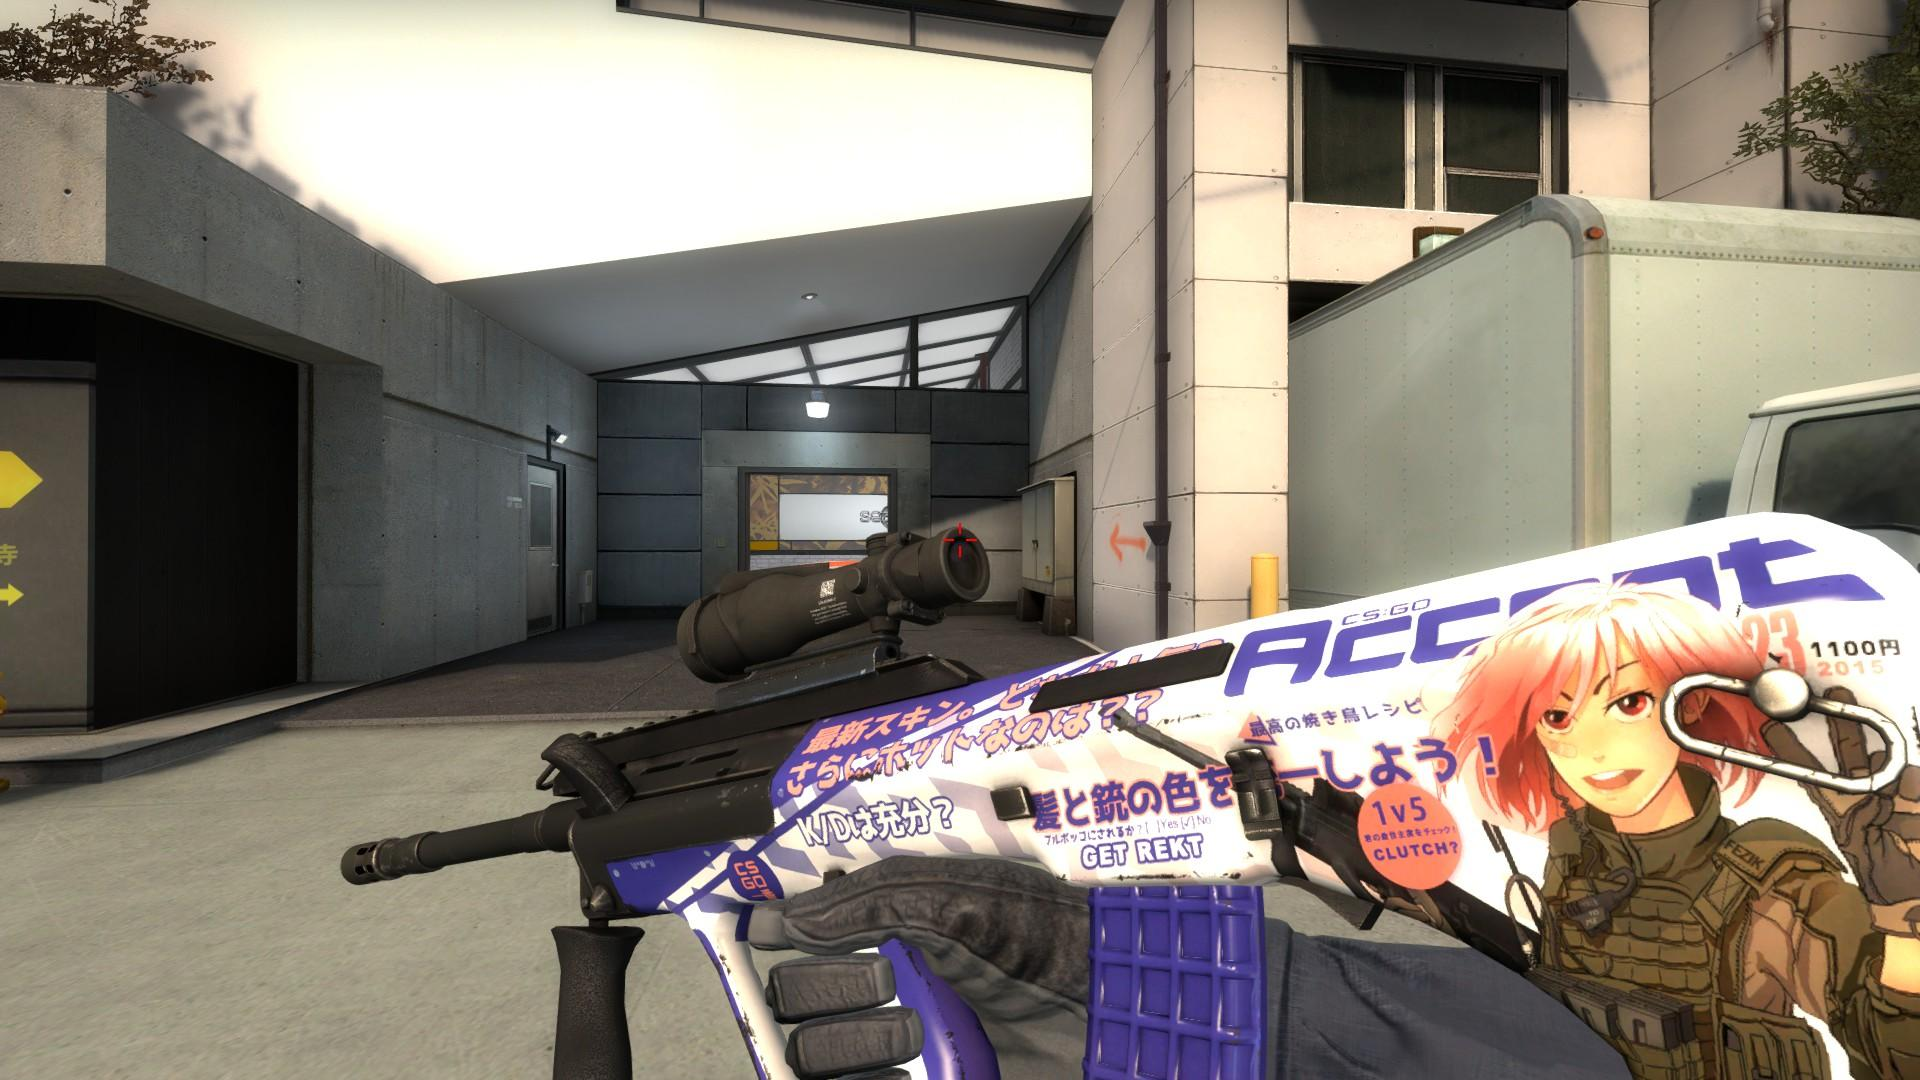 Counter Strike Source Counter Strike Global Offensive Roblox Counter Strike 1 6 Png Clipart Computer Servers Counter In 2020 Counter Strike Counter Strike Source The Most Expensive Cs Go Skins Guns Knives And Stickers